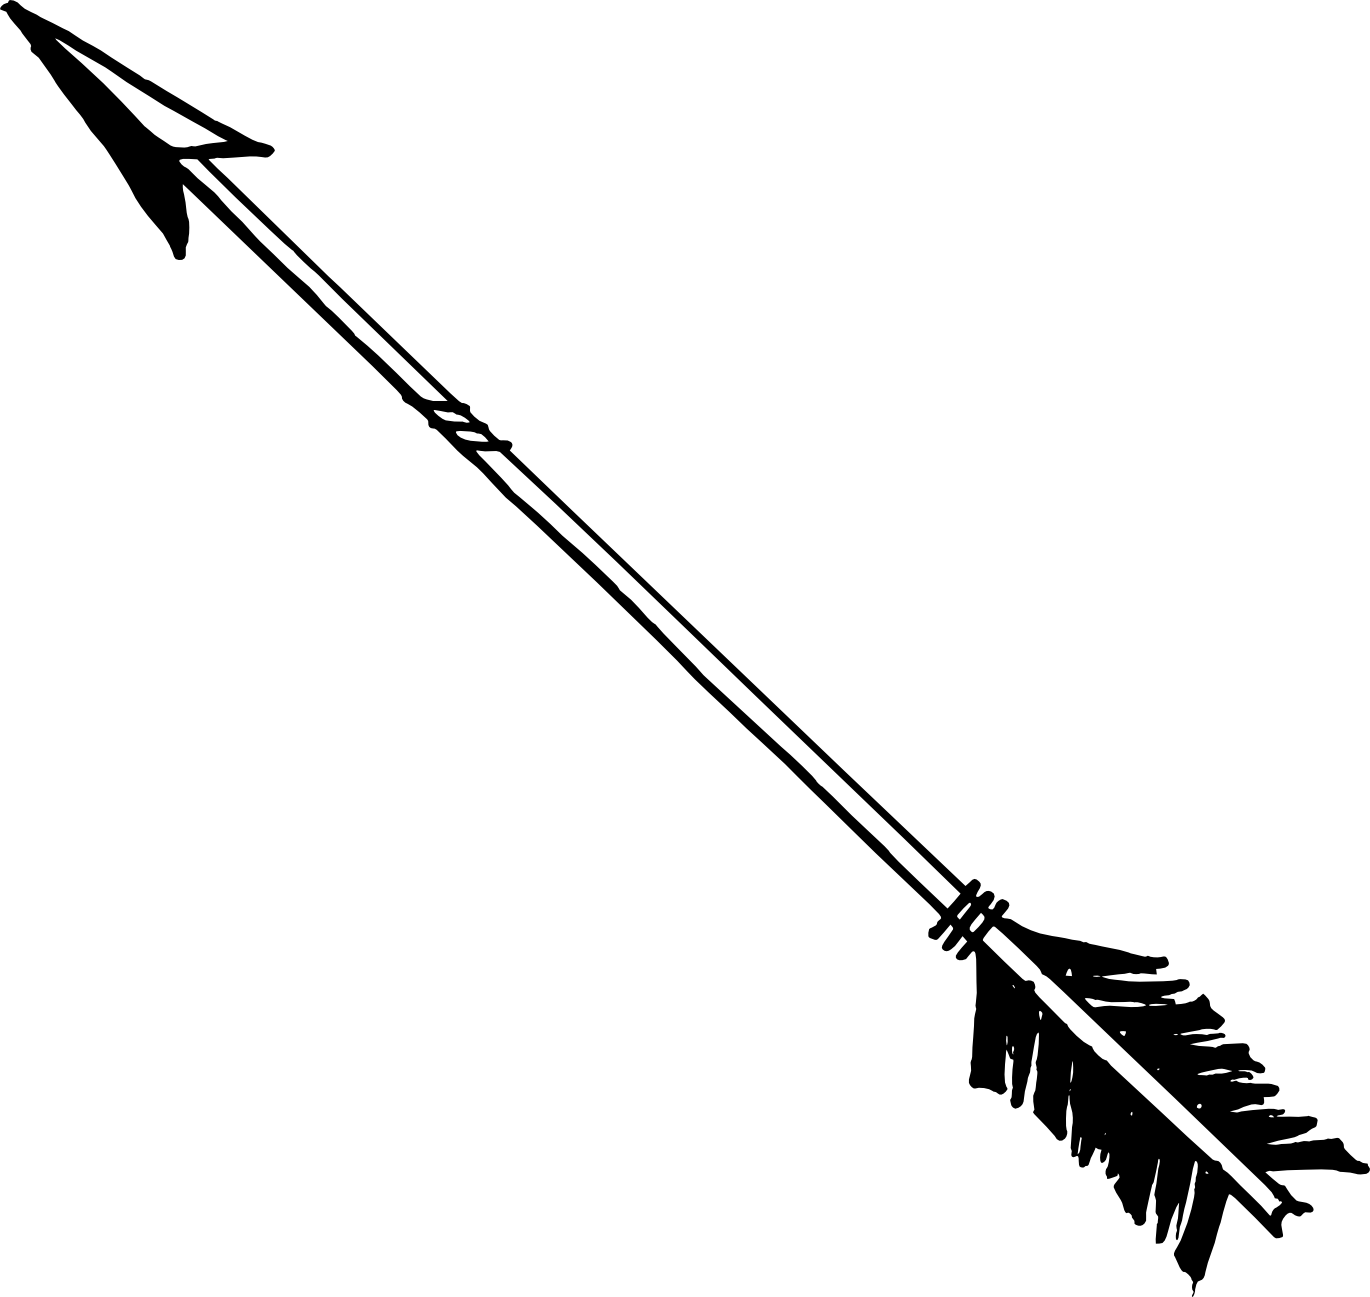 1370x1297 Bow Arrow Vector Png